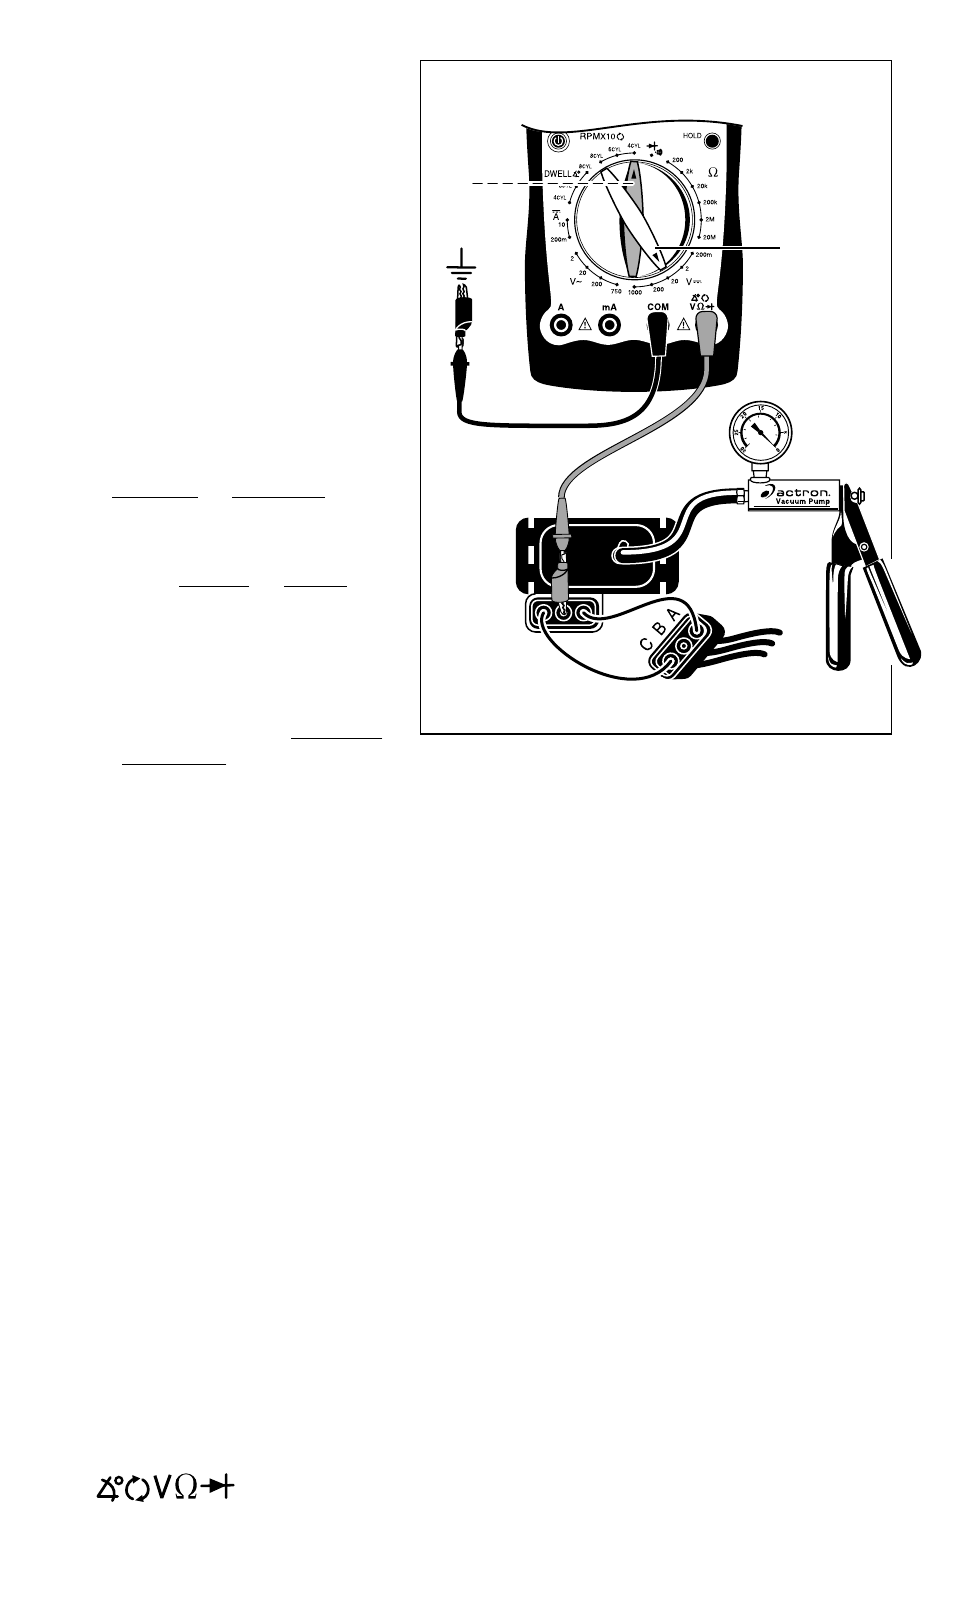 fig 34 actron autotroubleshooter cp7677 user manual page 31 rh manualsdir com Actron CP7677 DMM User Manual Actron CP7677 DMM